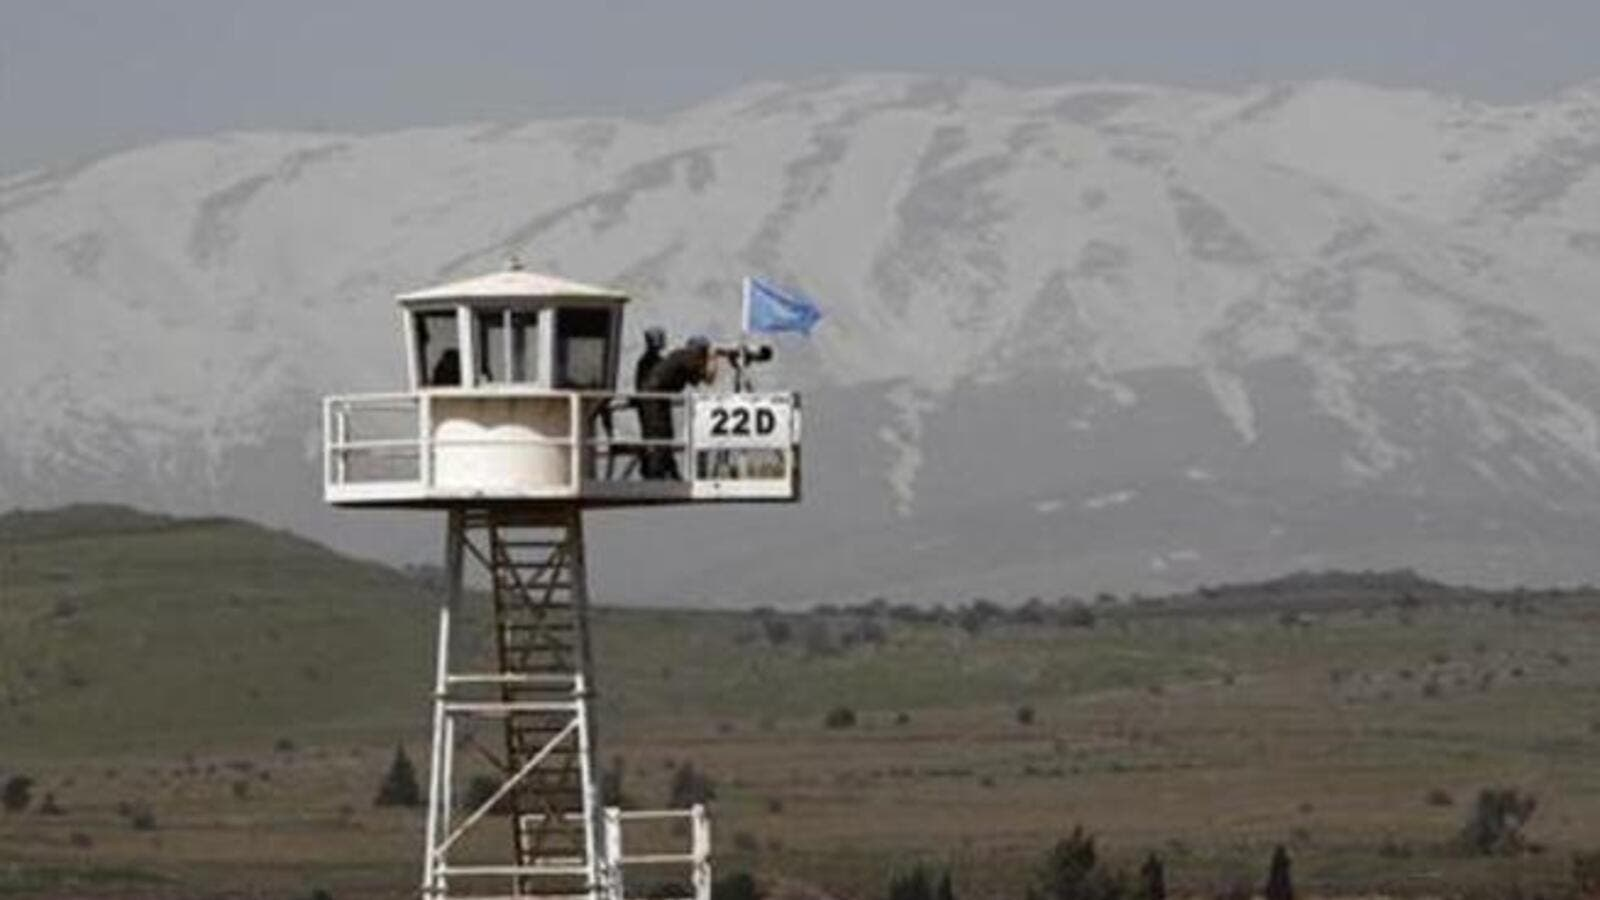 Israel has awarded its first license to drill for oil in the occupied Golan Heights